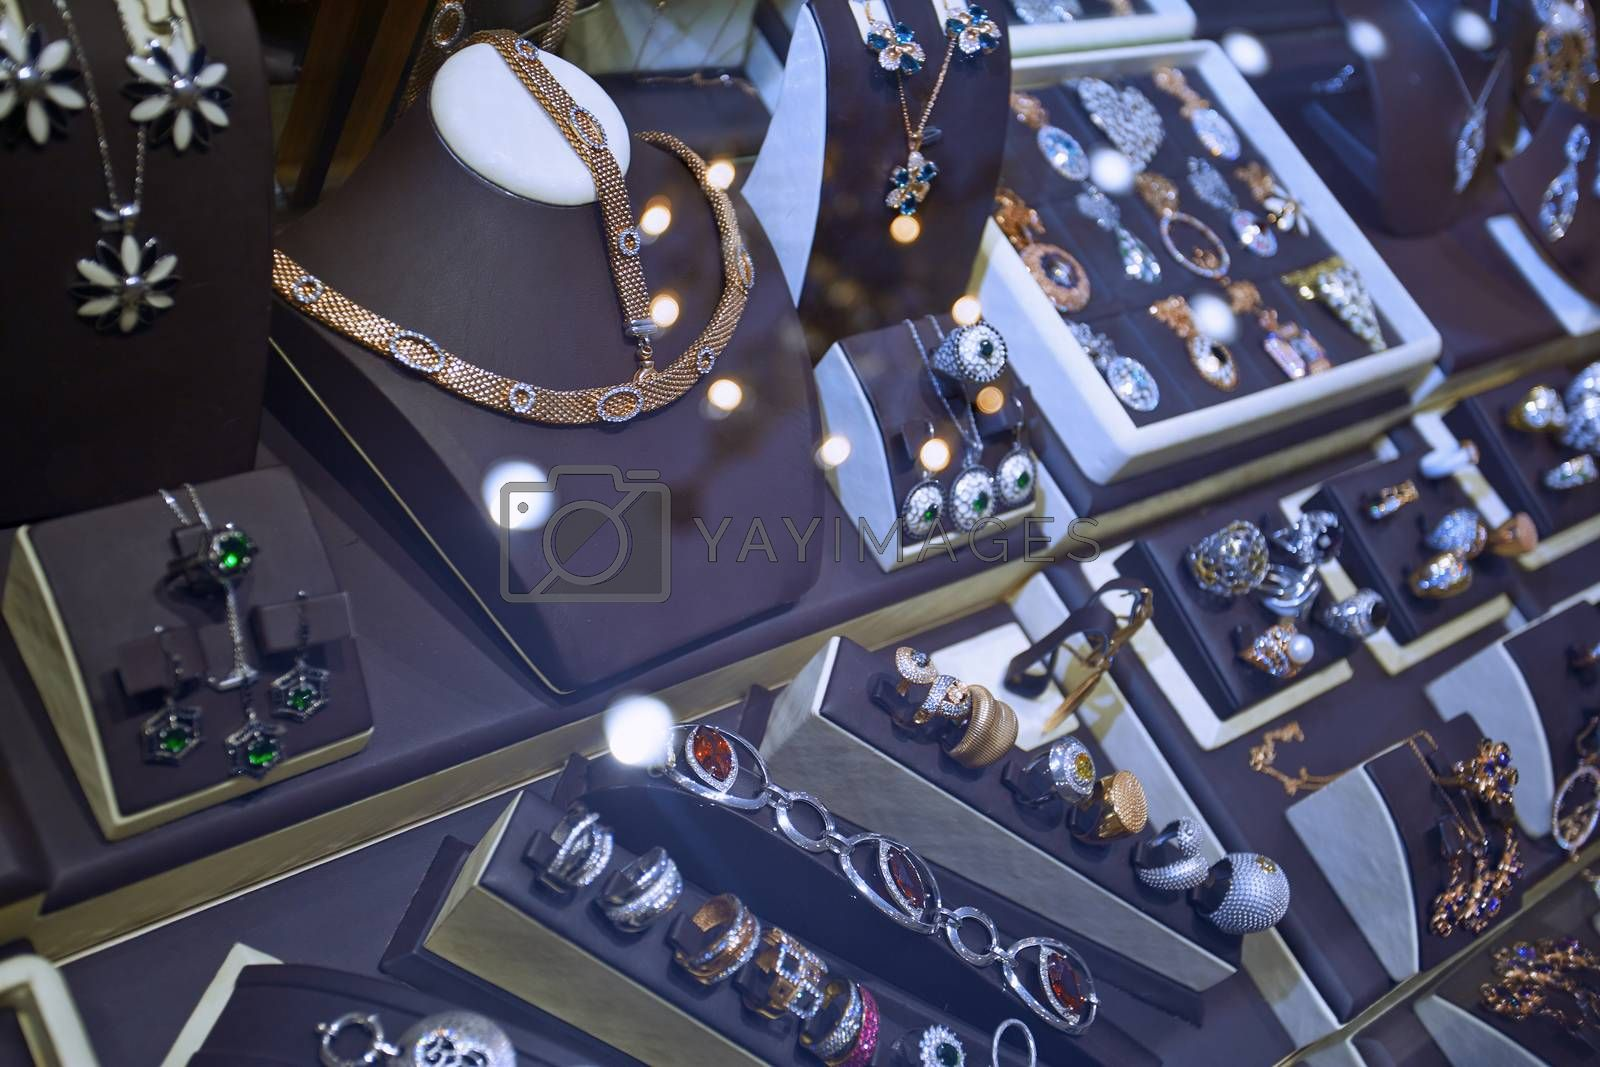 Jewelry shop. Close-up view on showcase